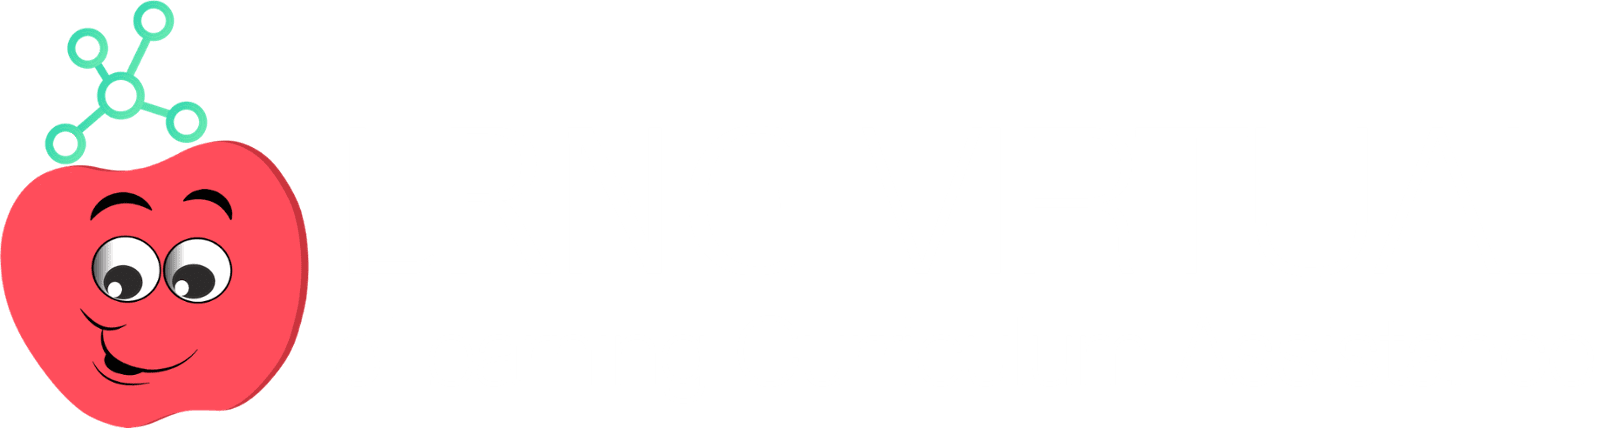 LRNG Virtual White - Coming Soon! - LRNG Academy - Shaping Boundless Generations - Online Tutoring | Online Learning | eLearning | Virtual School | Tutoring Service | Virtual Learning